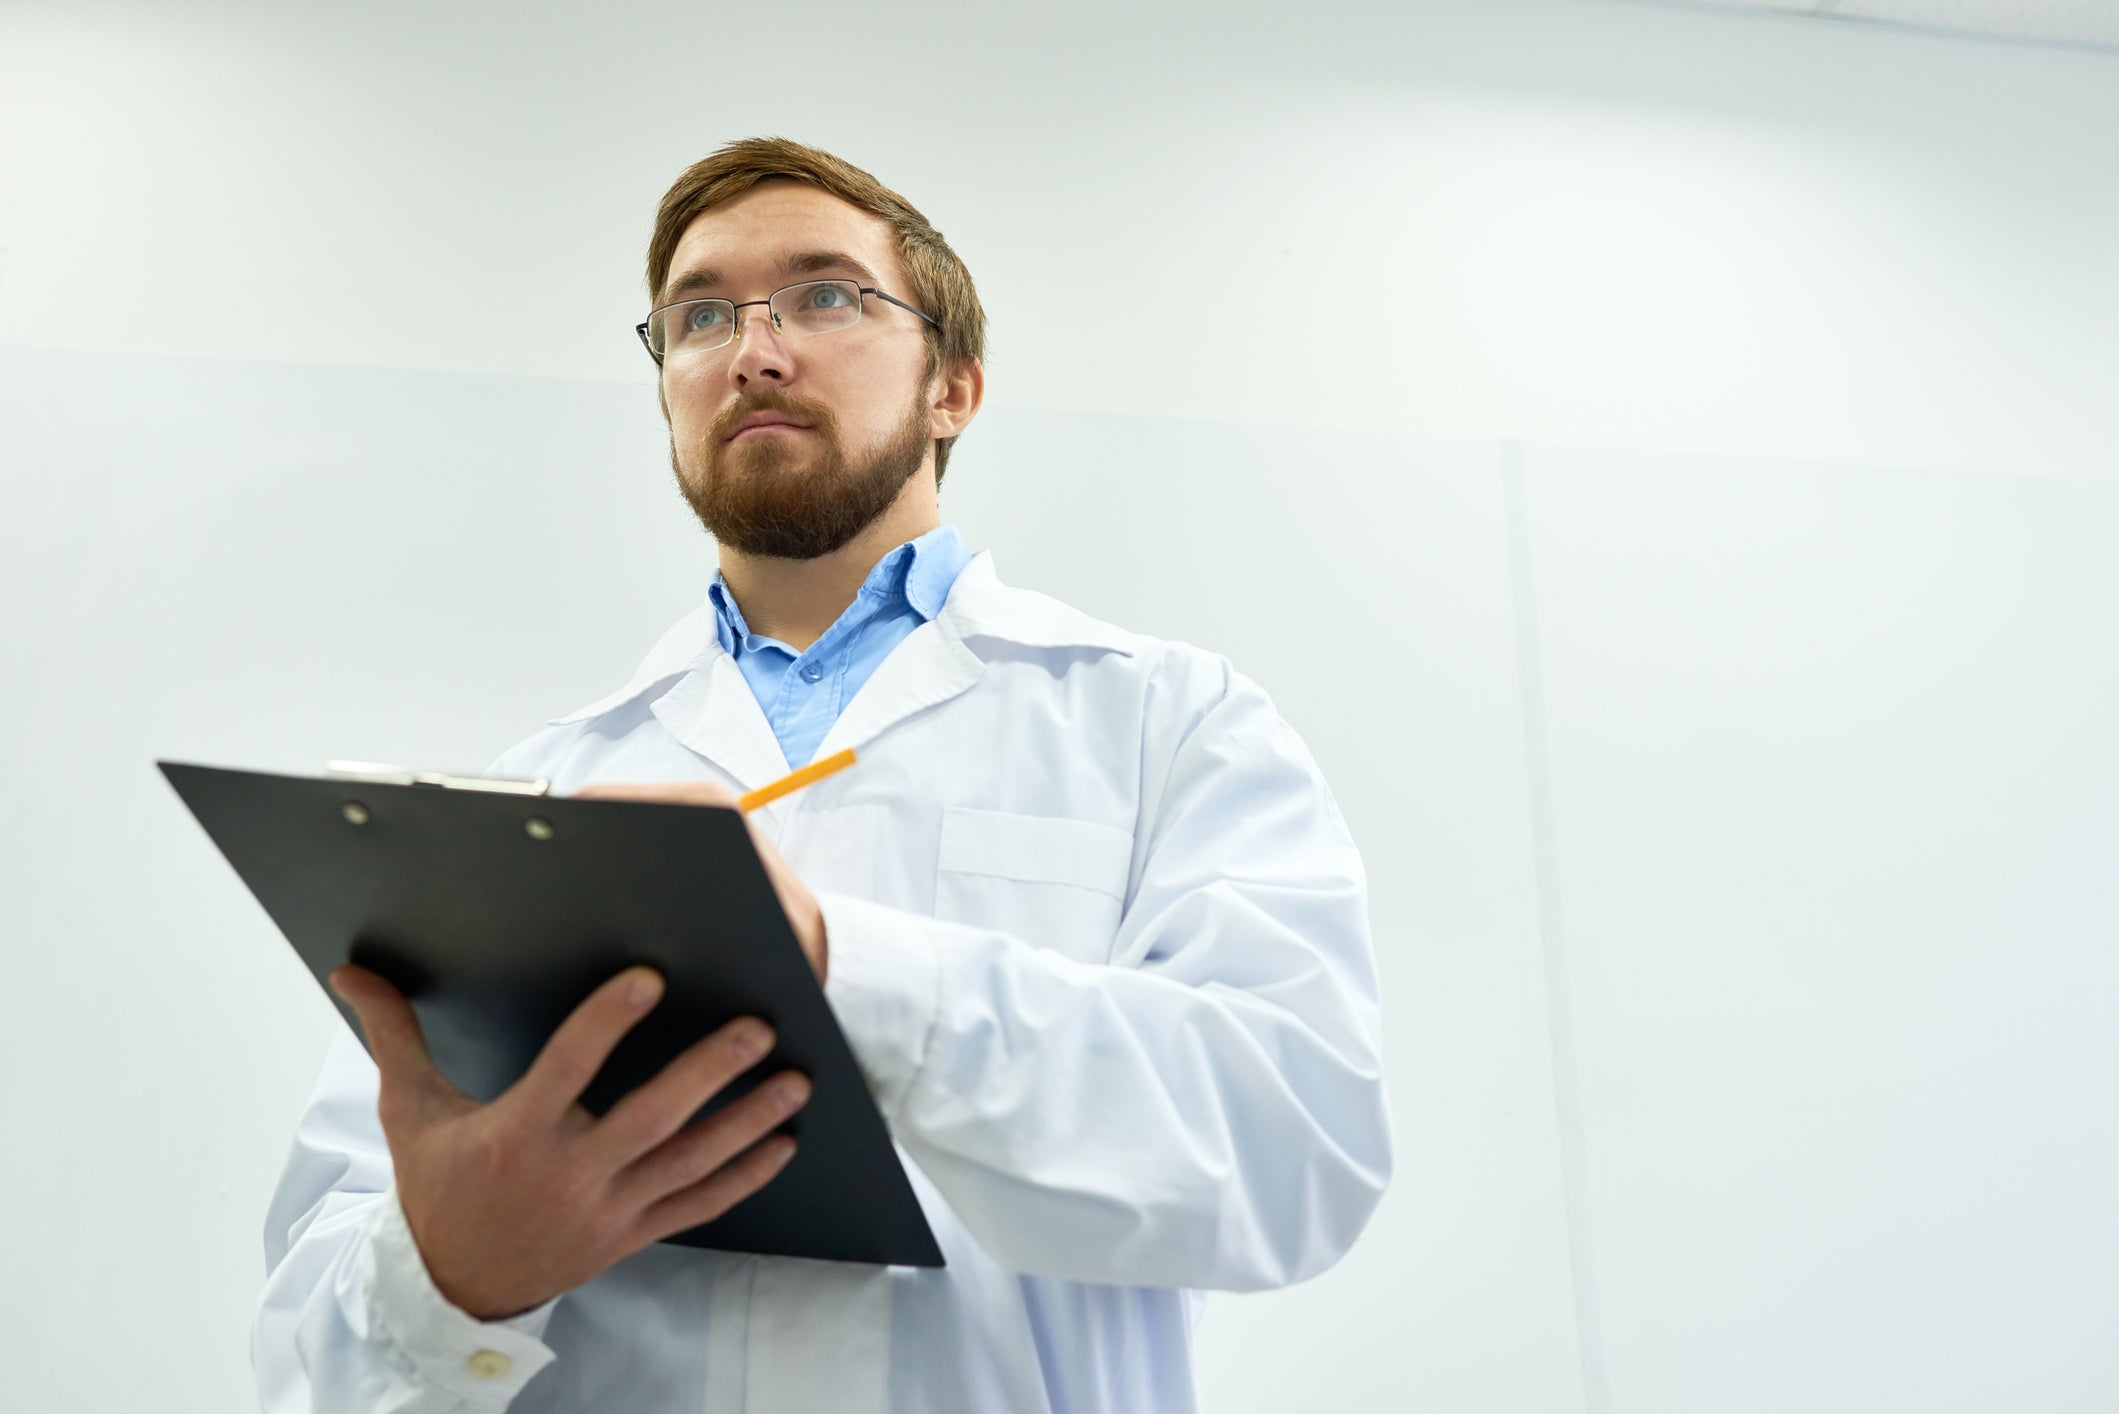 Guy in a lab coat keeping score on a clipboard.